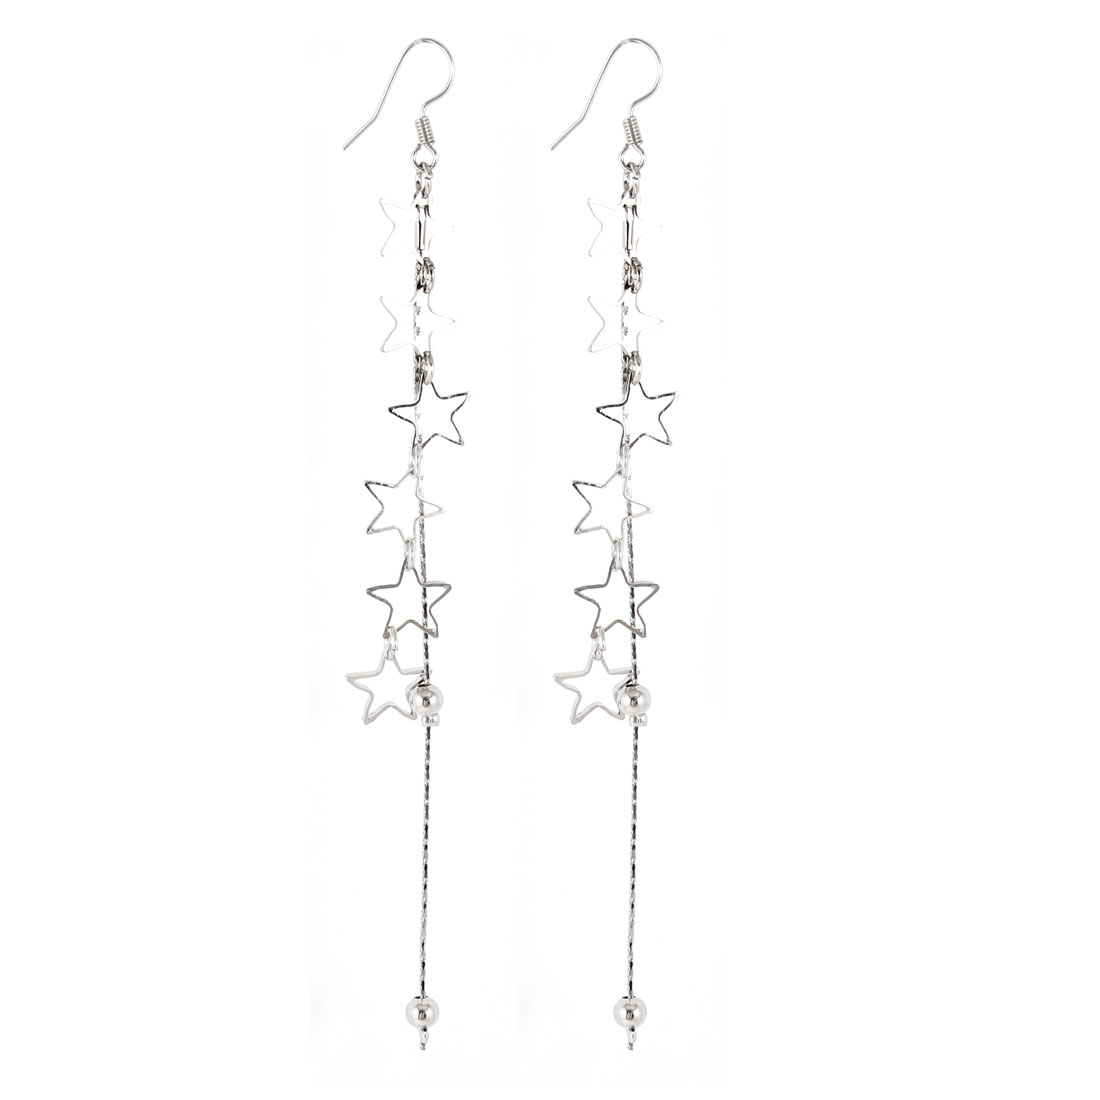 Pair Silver Tone Five Point Star Shape Dangling Hook Earrings for Lady